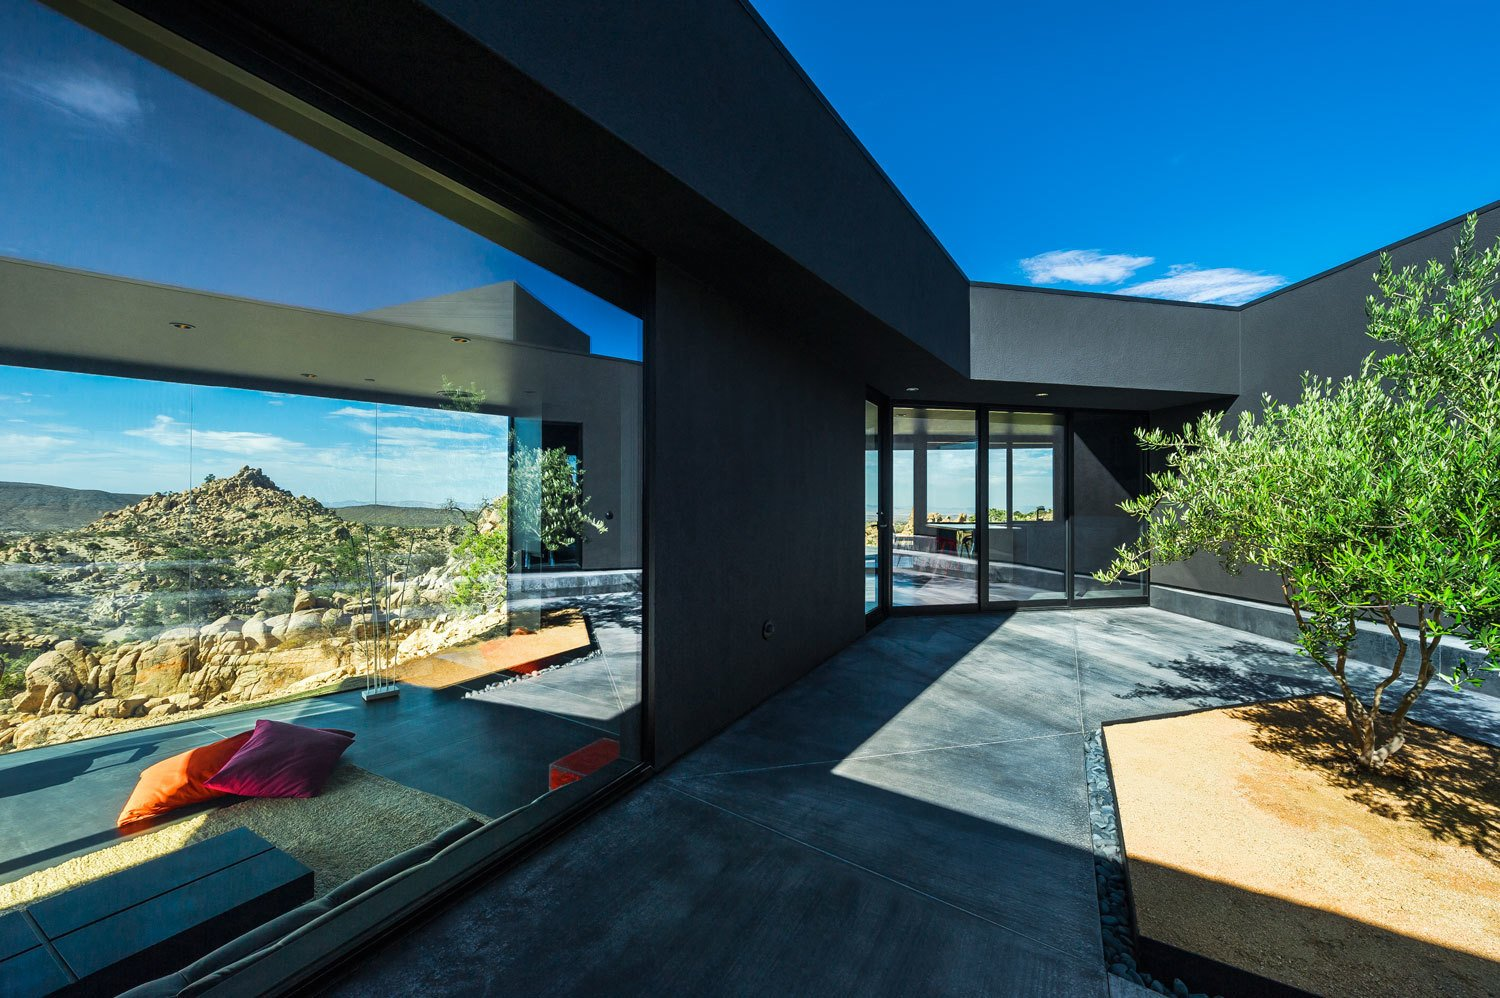 The architects designed the rooms as a linear sequence wrapping around a central courtyard. As one would have traversed the preexisting rock face, residents are constantly negotiating small elevation changes throughout the house. The plan also protects a central courtyard from the harsh Yucca Valley climate.